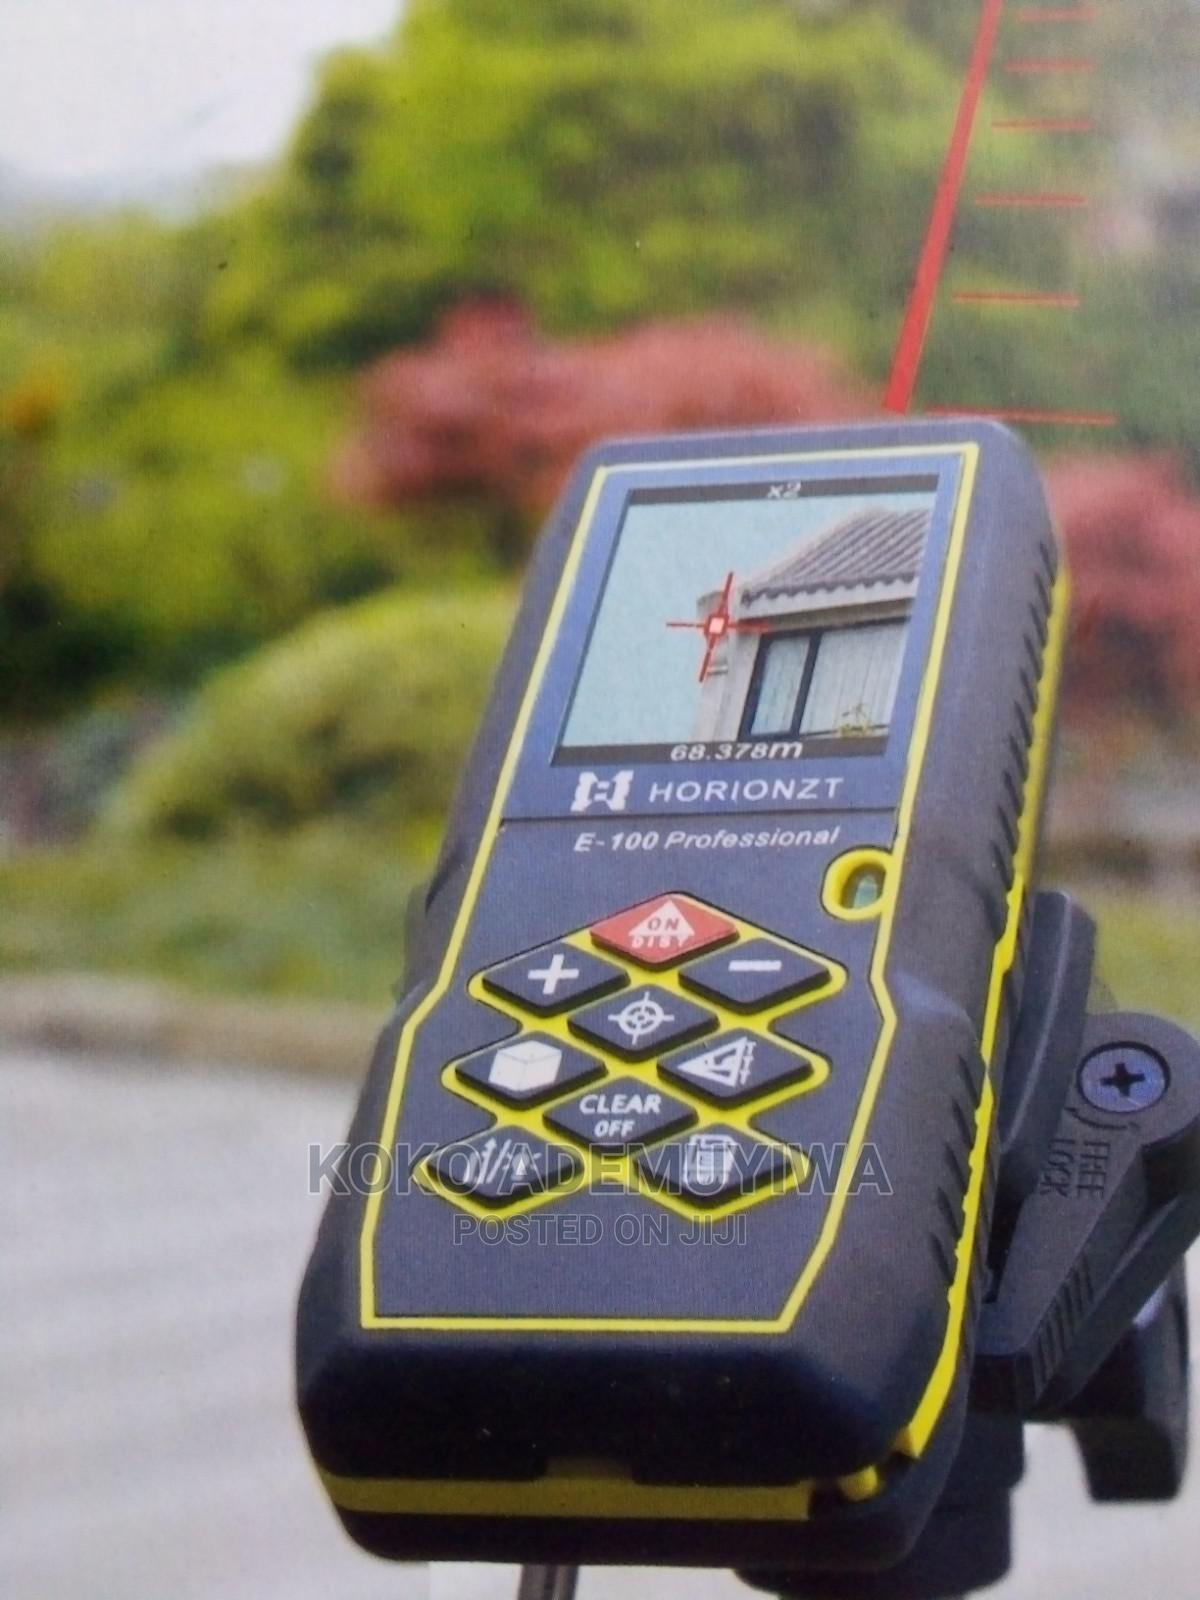 Outdoor Laser Meter With Camera + Tripod